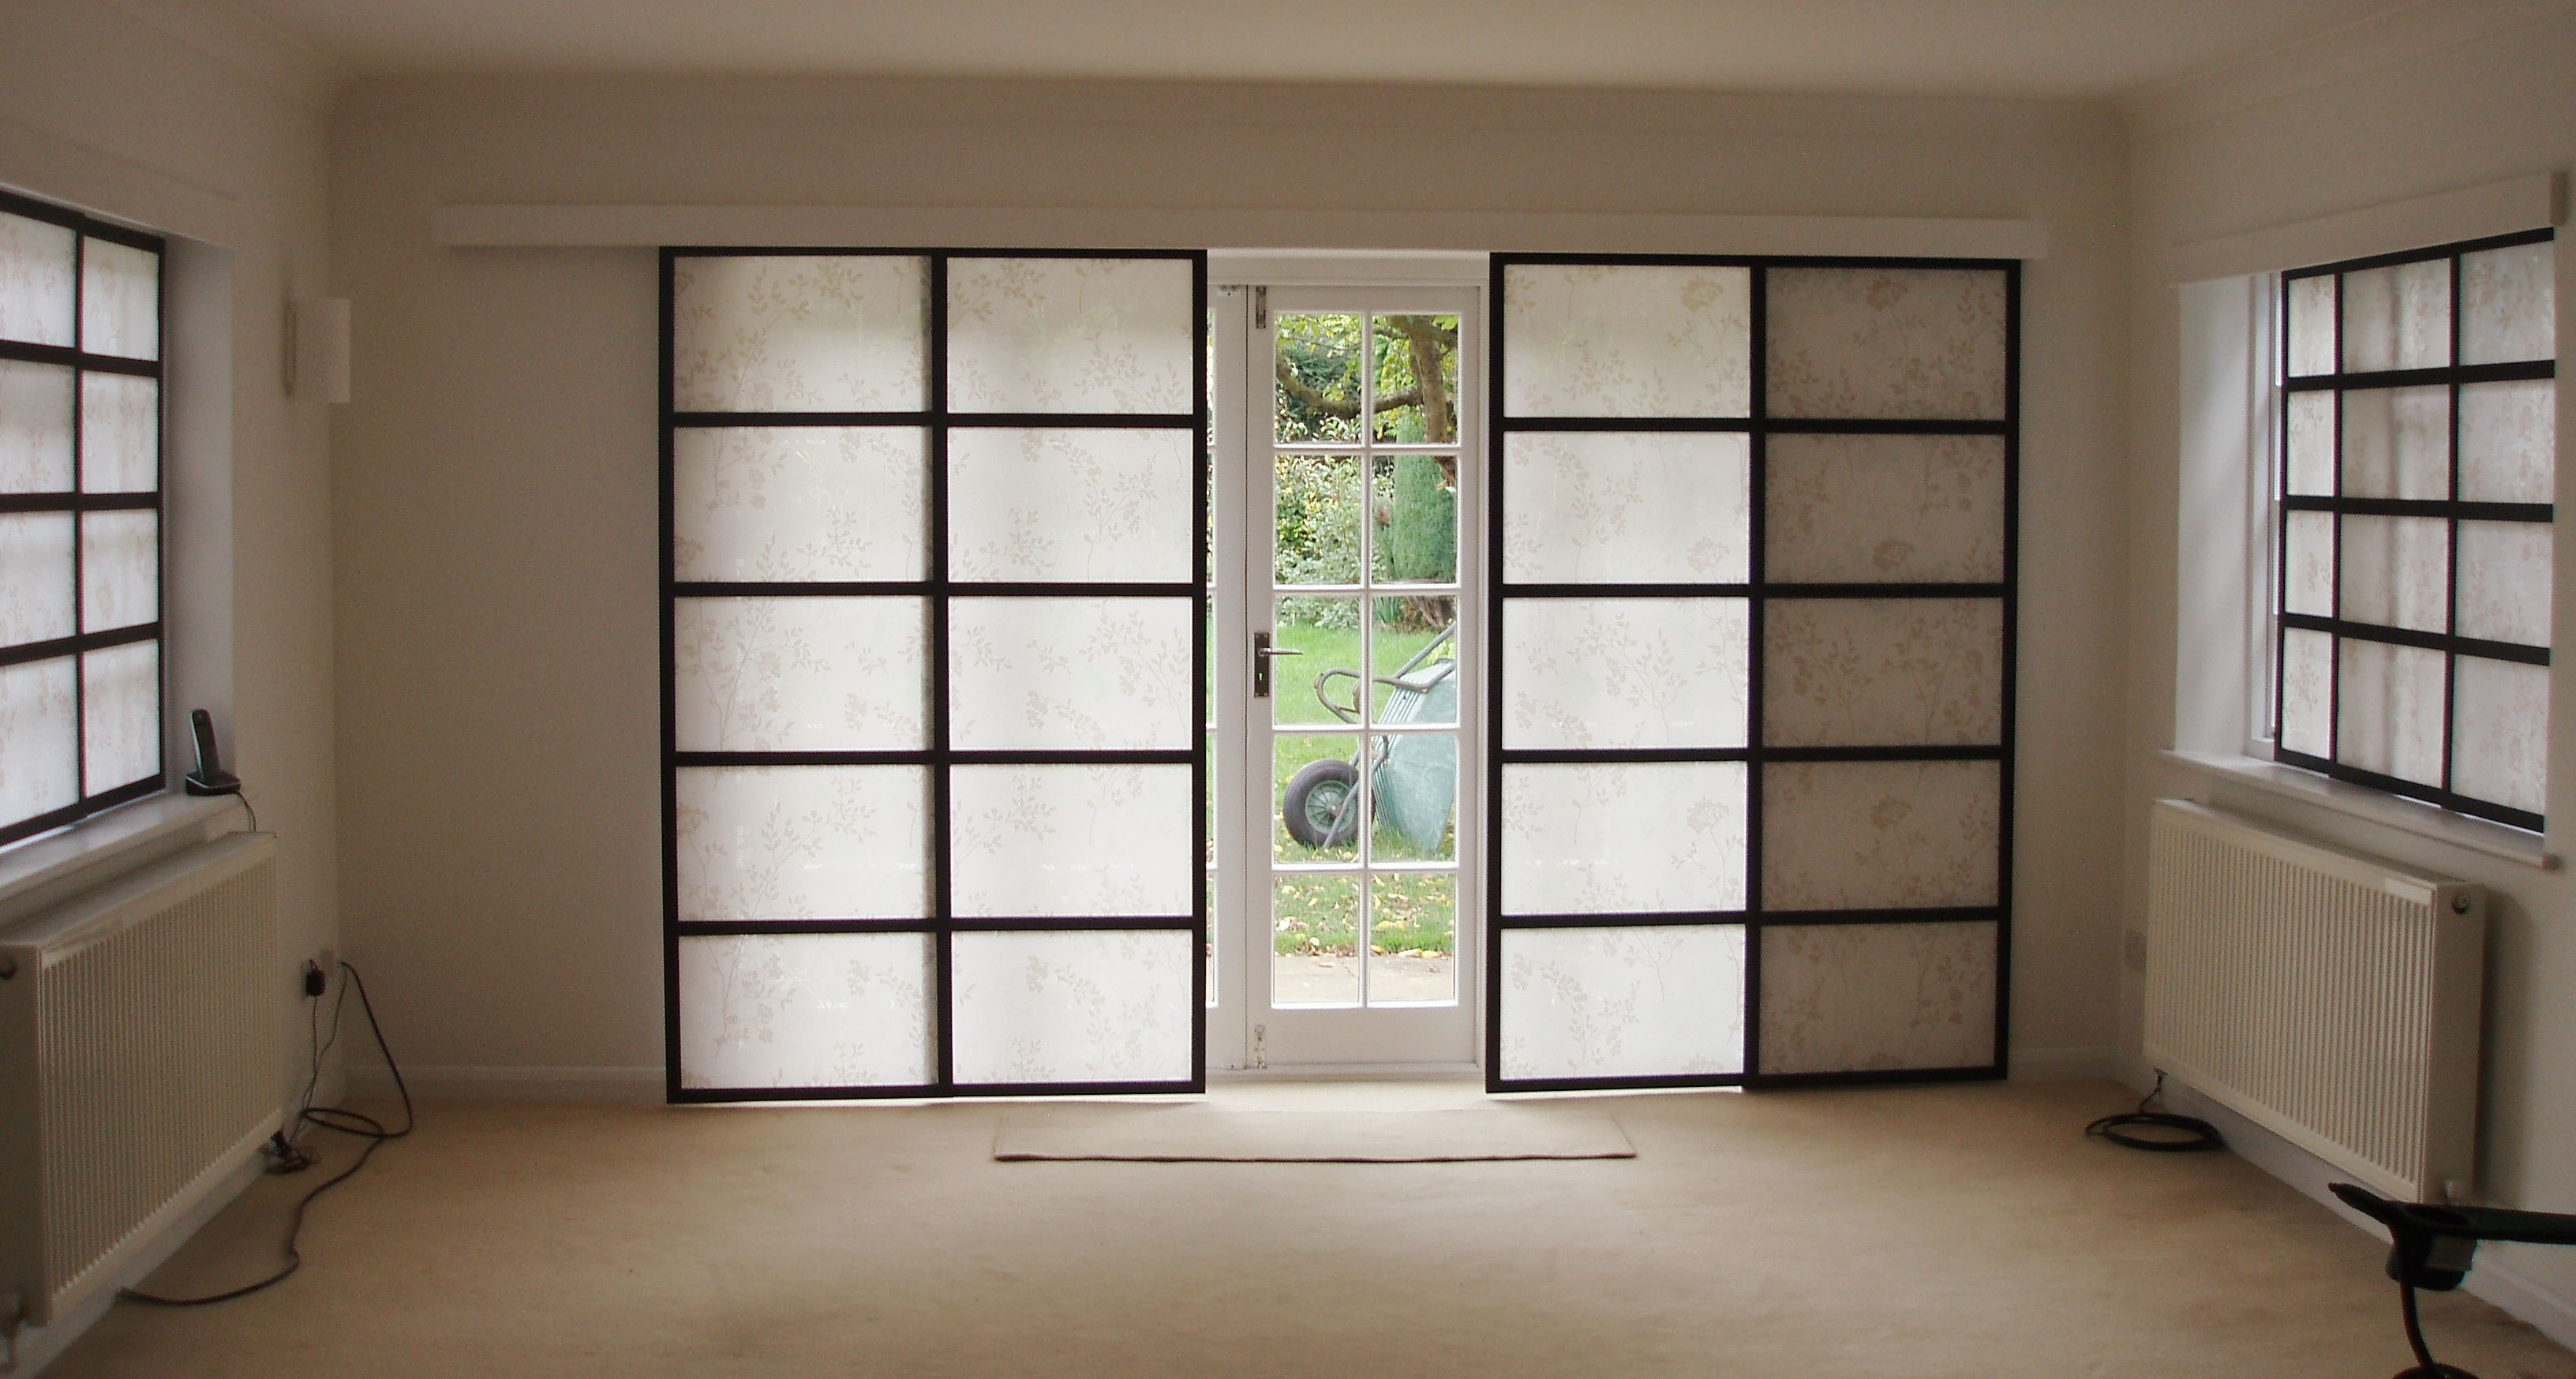 House design with sliding window  sliding window panels ikea  google search  home remodeling in